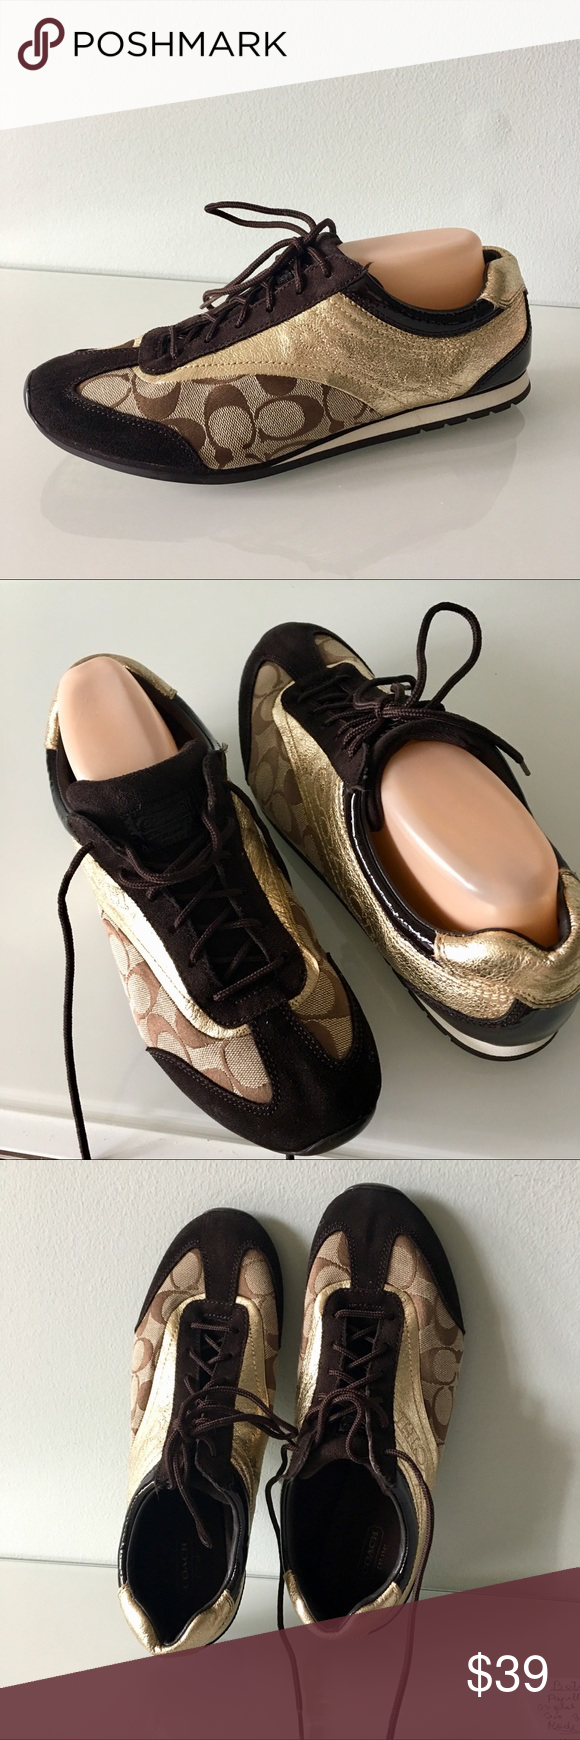 befc95277 ... france coach kodie sneakers size 11m sporty chic with coach iconic  signature logo and luxe suede